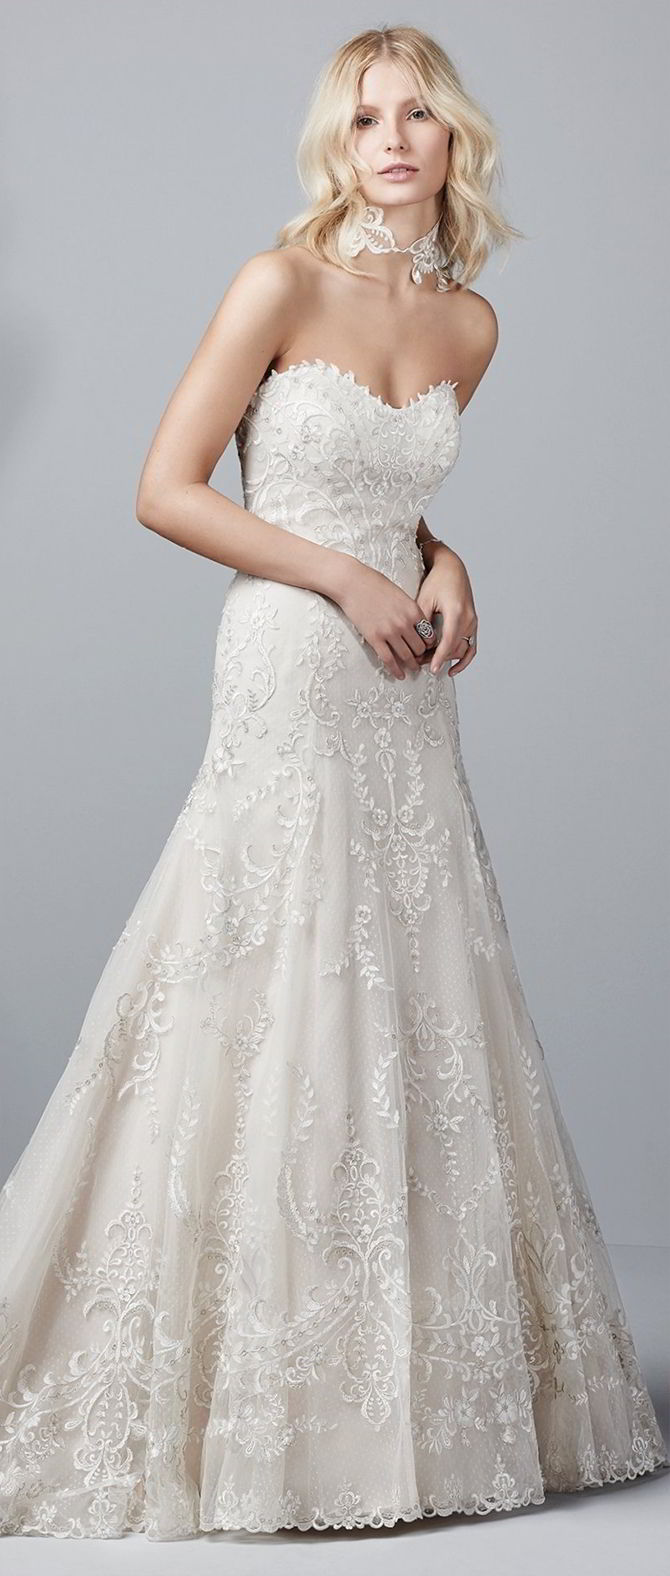 Lace Embellished Line Flare Dress Fit Wedding Sweetheart And Neckline Soft And Tulle